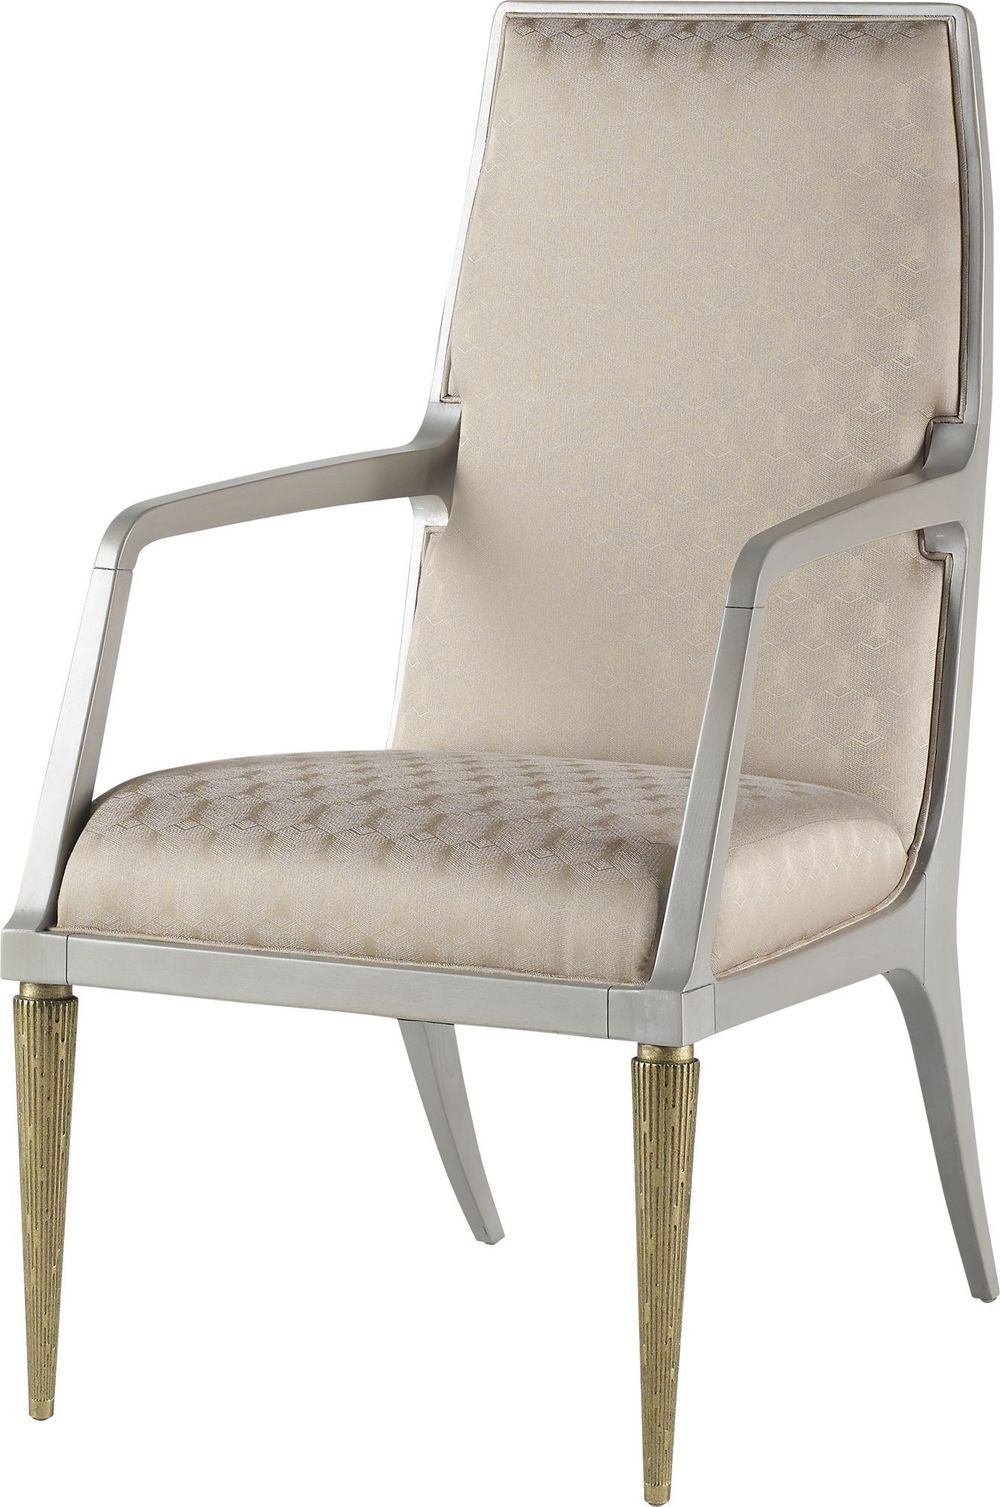 Baker Furniture - Jasper Arm Chair